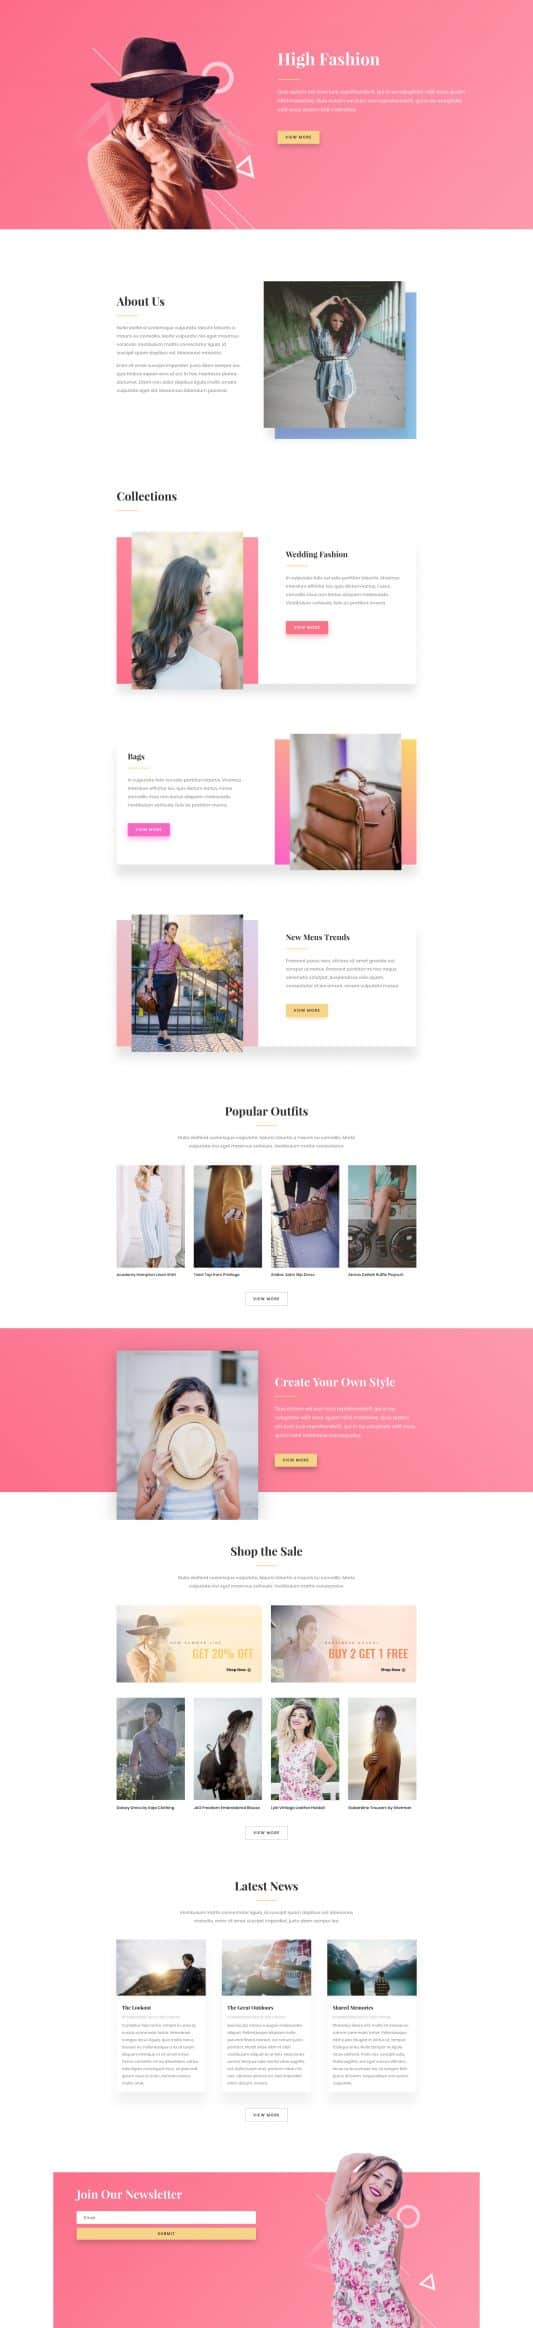 Fashion Web Design 7